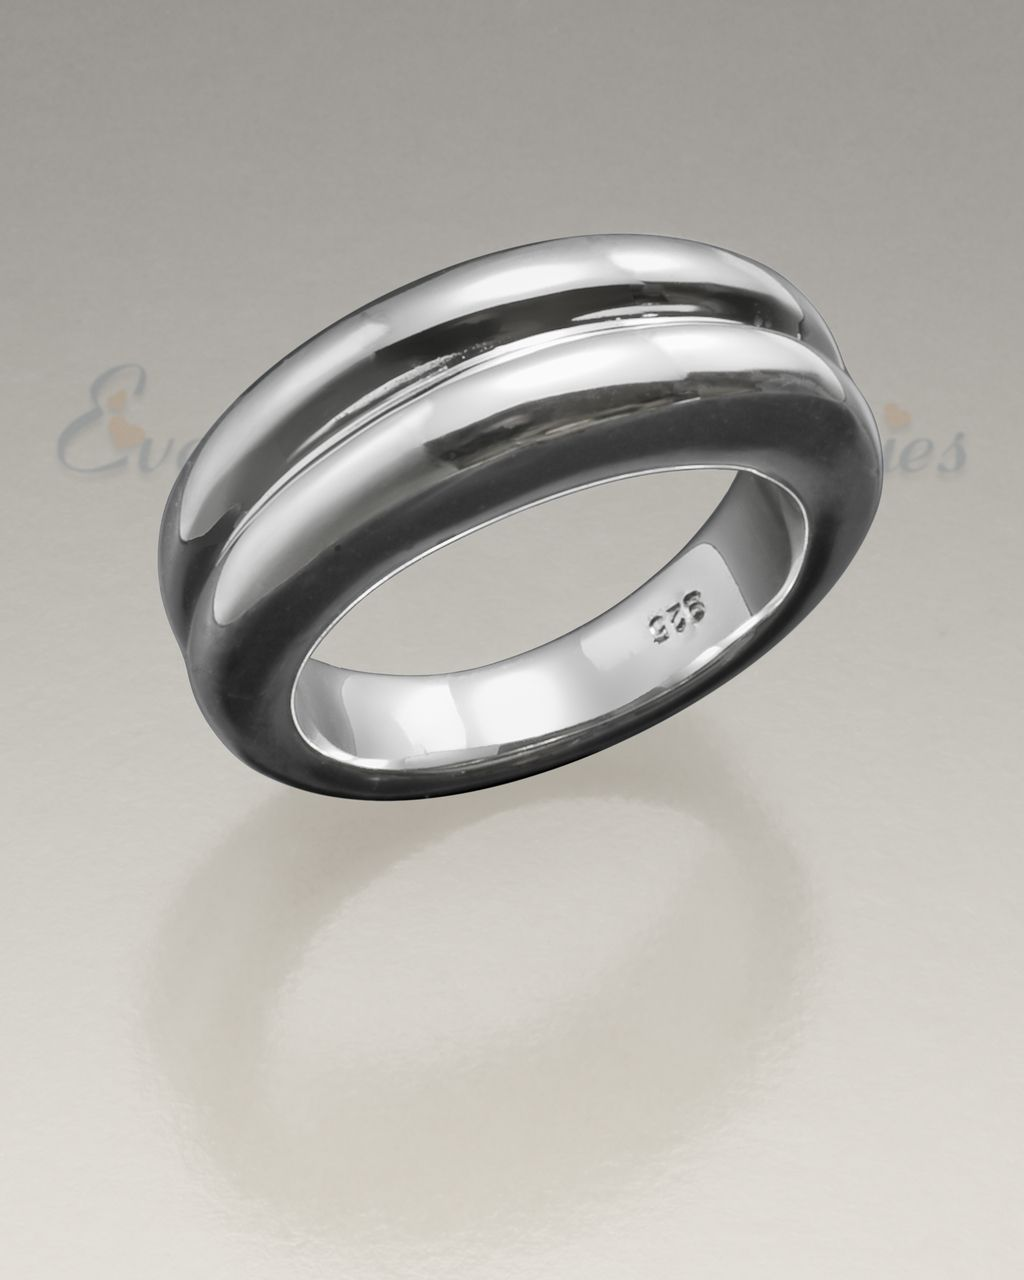 cremation dhgate rings women ash men from stainless size kwind ring holder silver steel product jewelry urn com